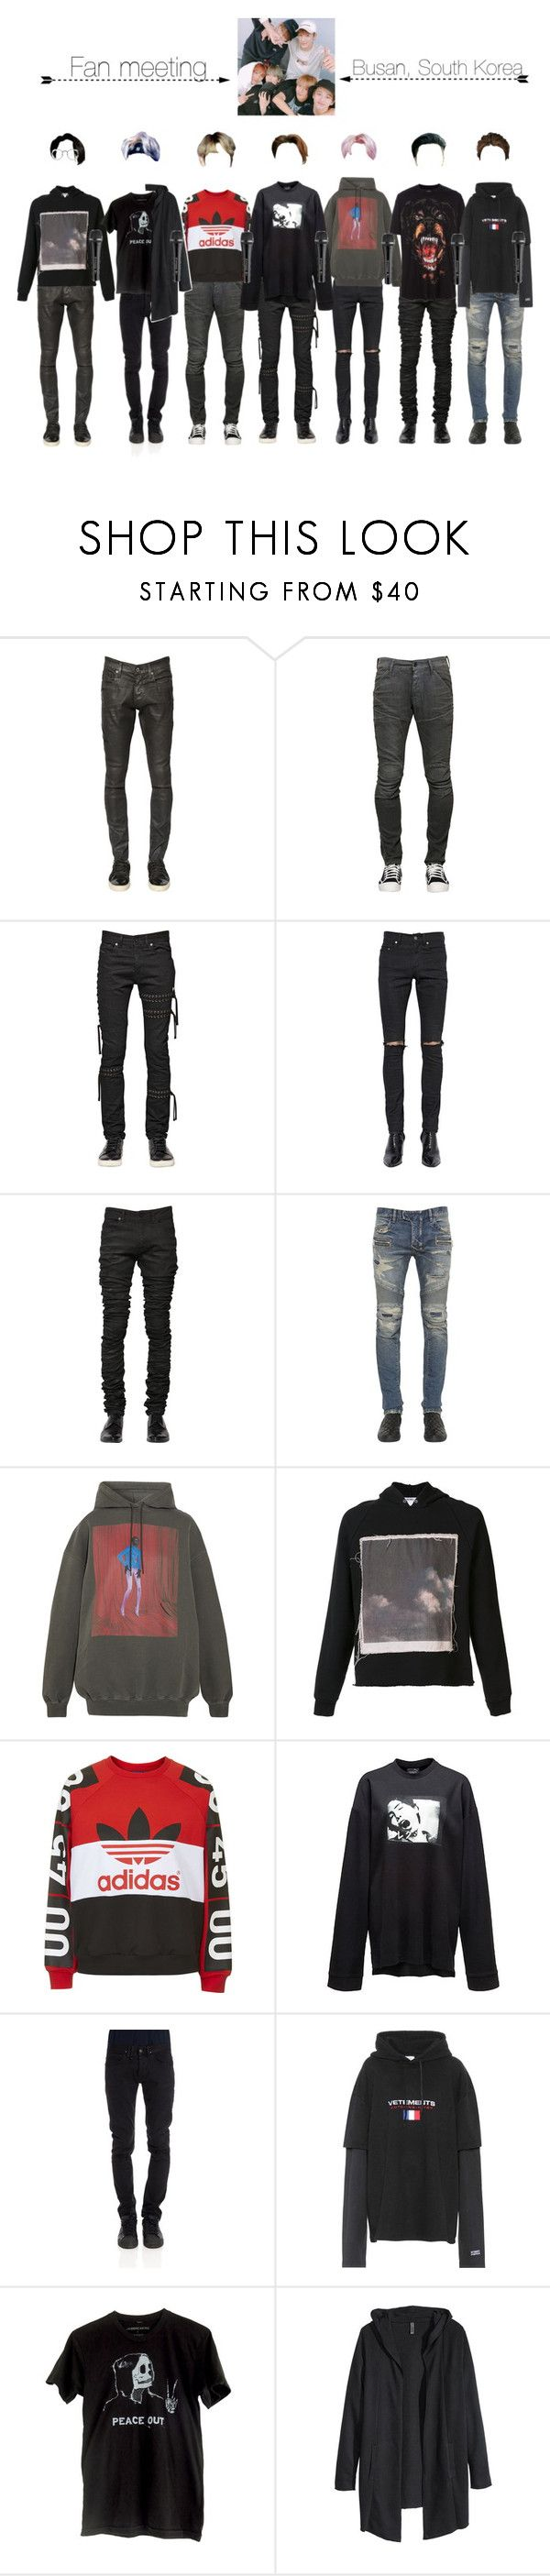 """""""[Fan Meeting]- Busan"""" by lucky7-official ❤ liked on Polyvore featuring G-Star, Diesel Black Gold, Yves Saint Laurent, Balmain, Balenciaga, Enfants Riches Déprimés, Topshop, Givenchy, CYCLE and Vetements"""